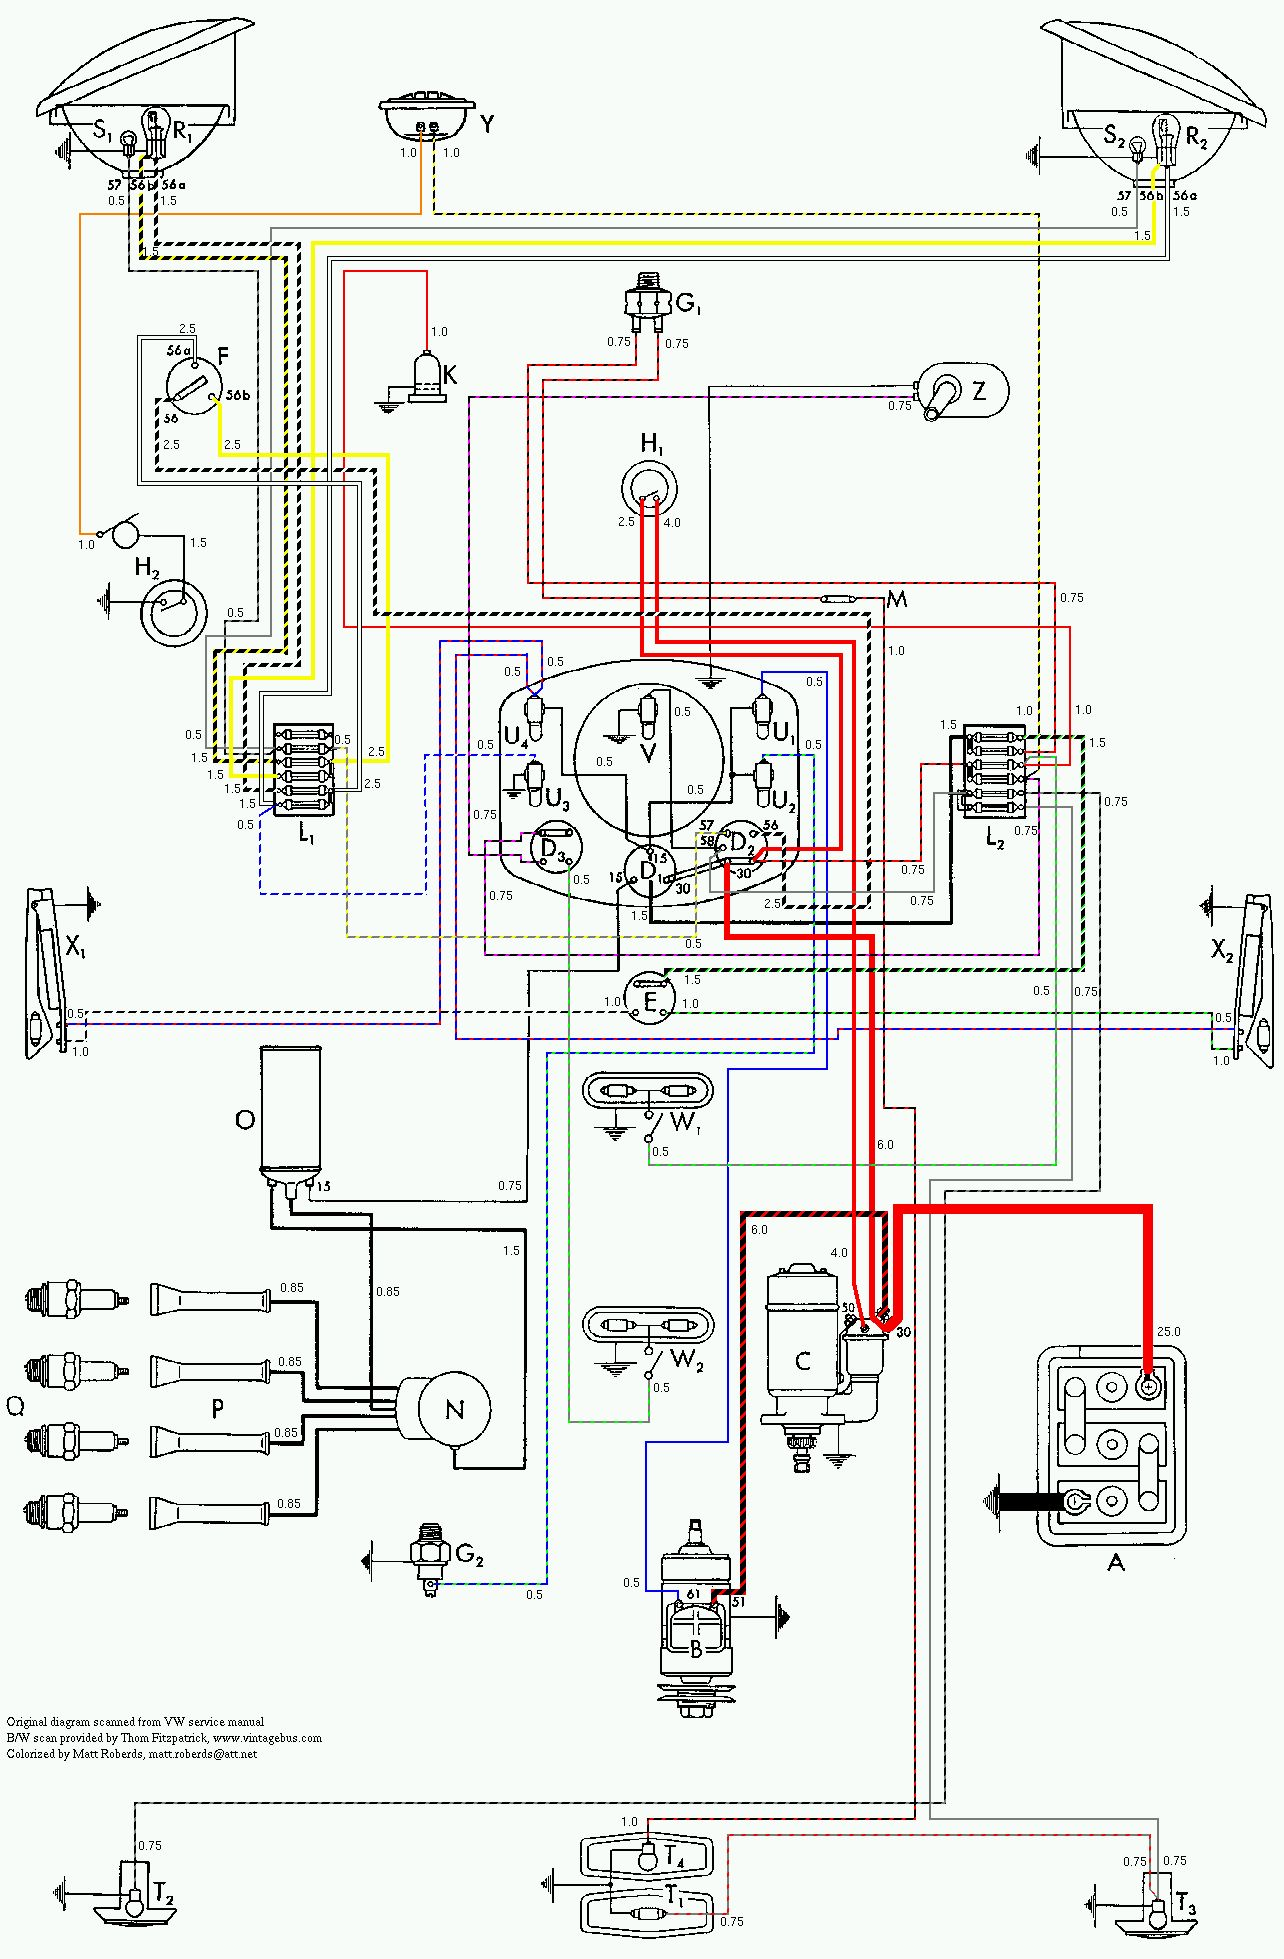 bus 53 color vintagebus com vw bus (and other) wiring diagrams 1991 Vanagon Interior at crackthecode.co